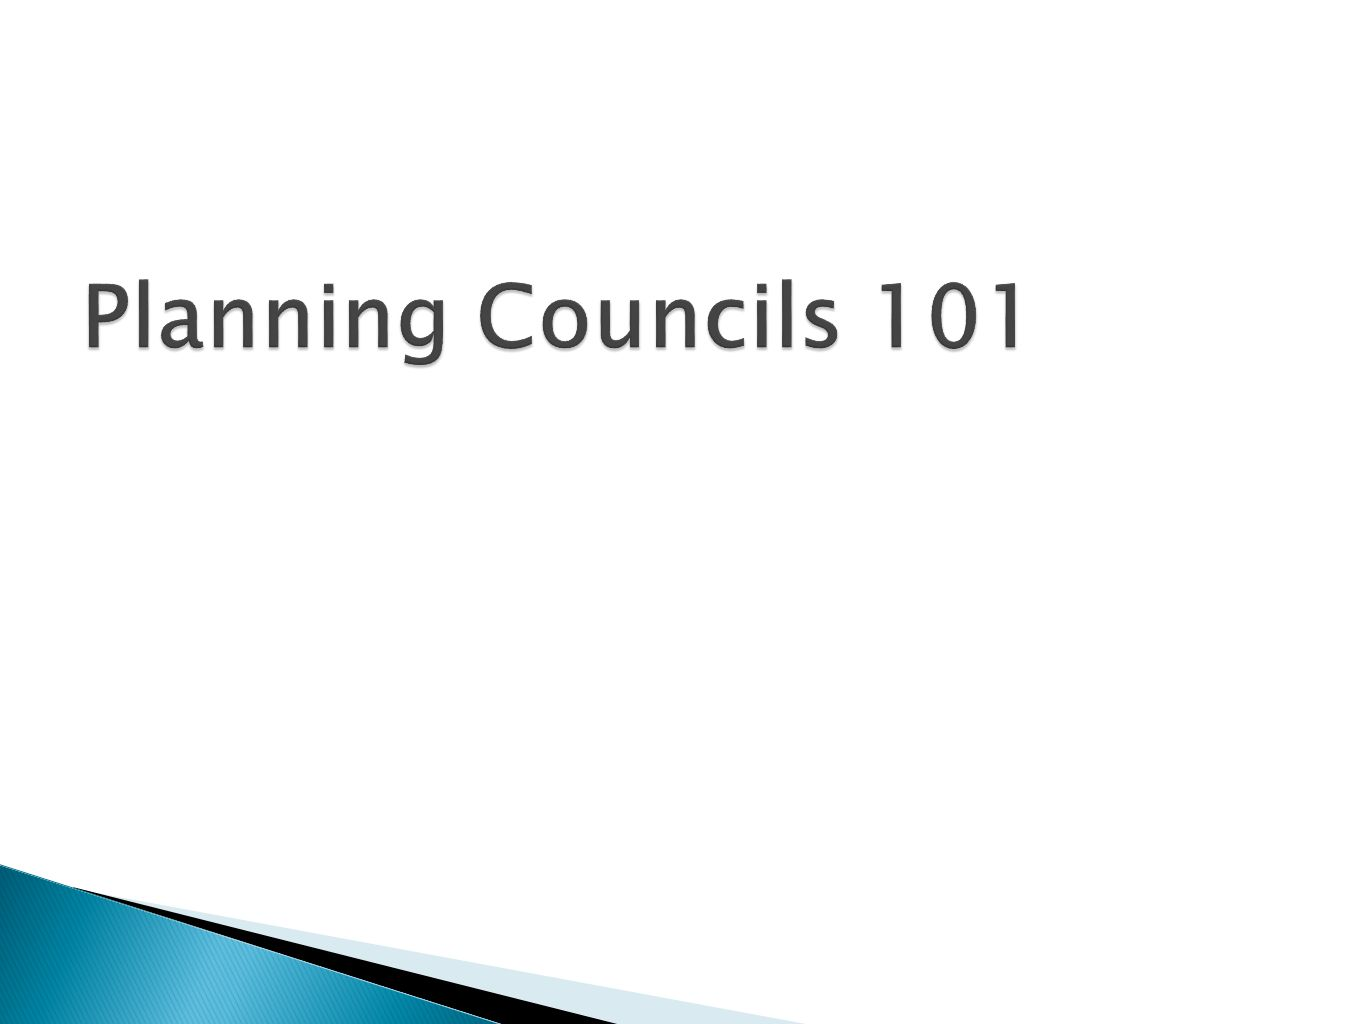  Provide overview of the block grant statute requiring planning councils  Provide overview of statutory responsibilities of planning councils  Describe context for changes in block grant  Provide considerations in combined Behavioral Health Planning Council  SAMHSA's Strategic Initiatives  Block Grant - Impact on State Authorities and Systems  Block Grant Programs' Goals